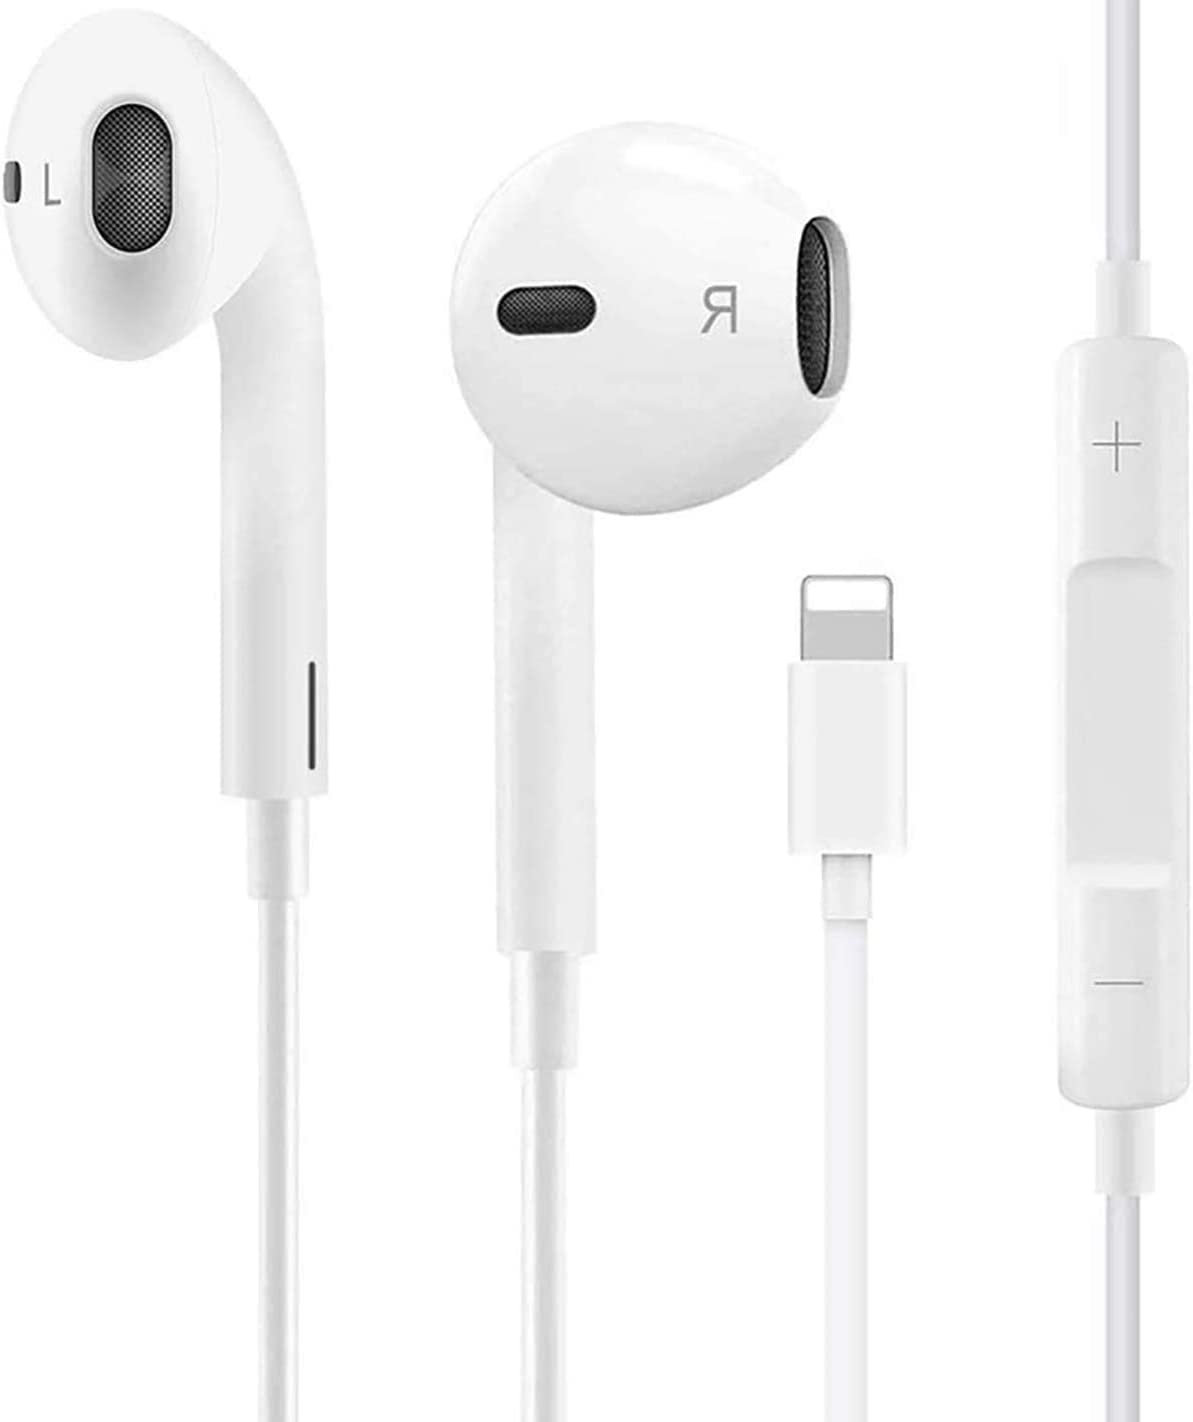 Earbuds Headphone Wired Earphones Headset with Microphone and Volume Control, Compatible with iPhone Xs/XR/XS Max/iPhone 7/7 Plus iPhone 8/8Plus /iPhone X Earphones (White)